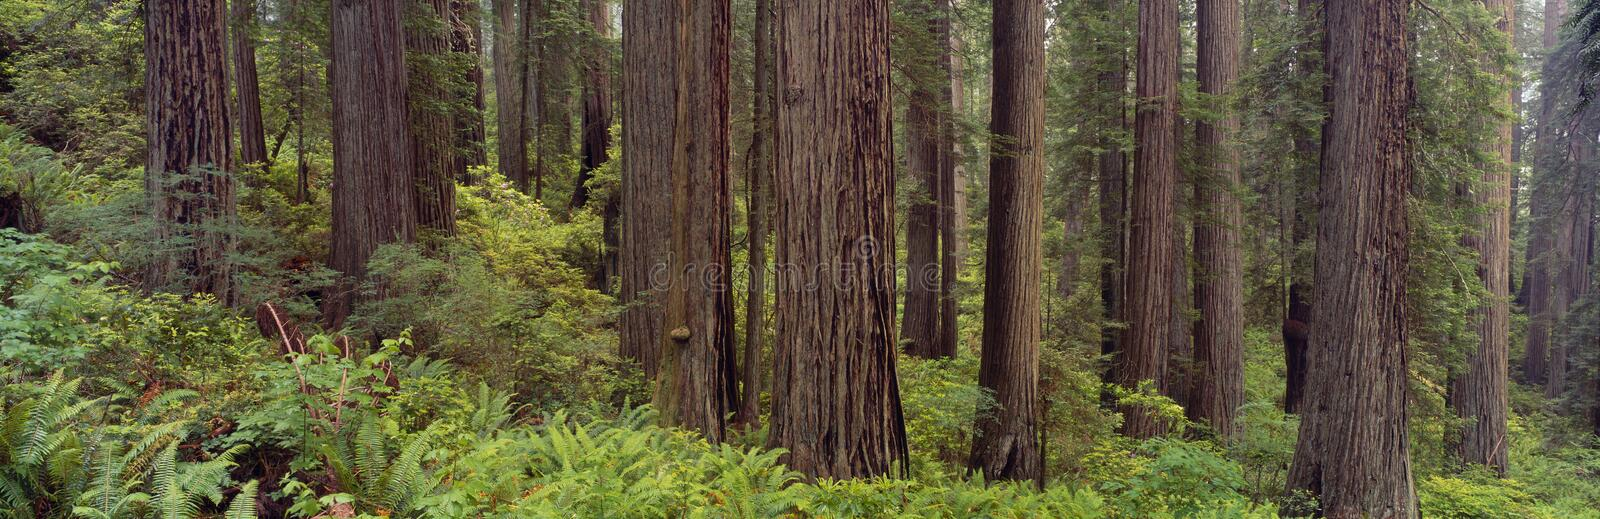 Old-growth redwoods stock images